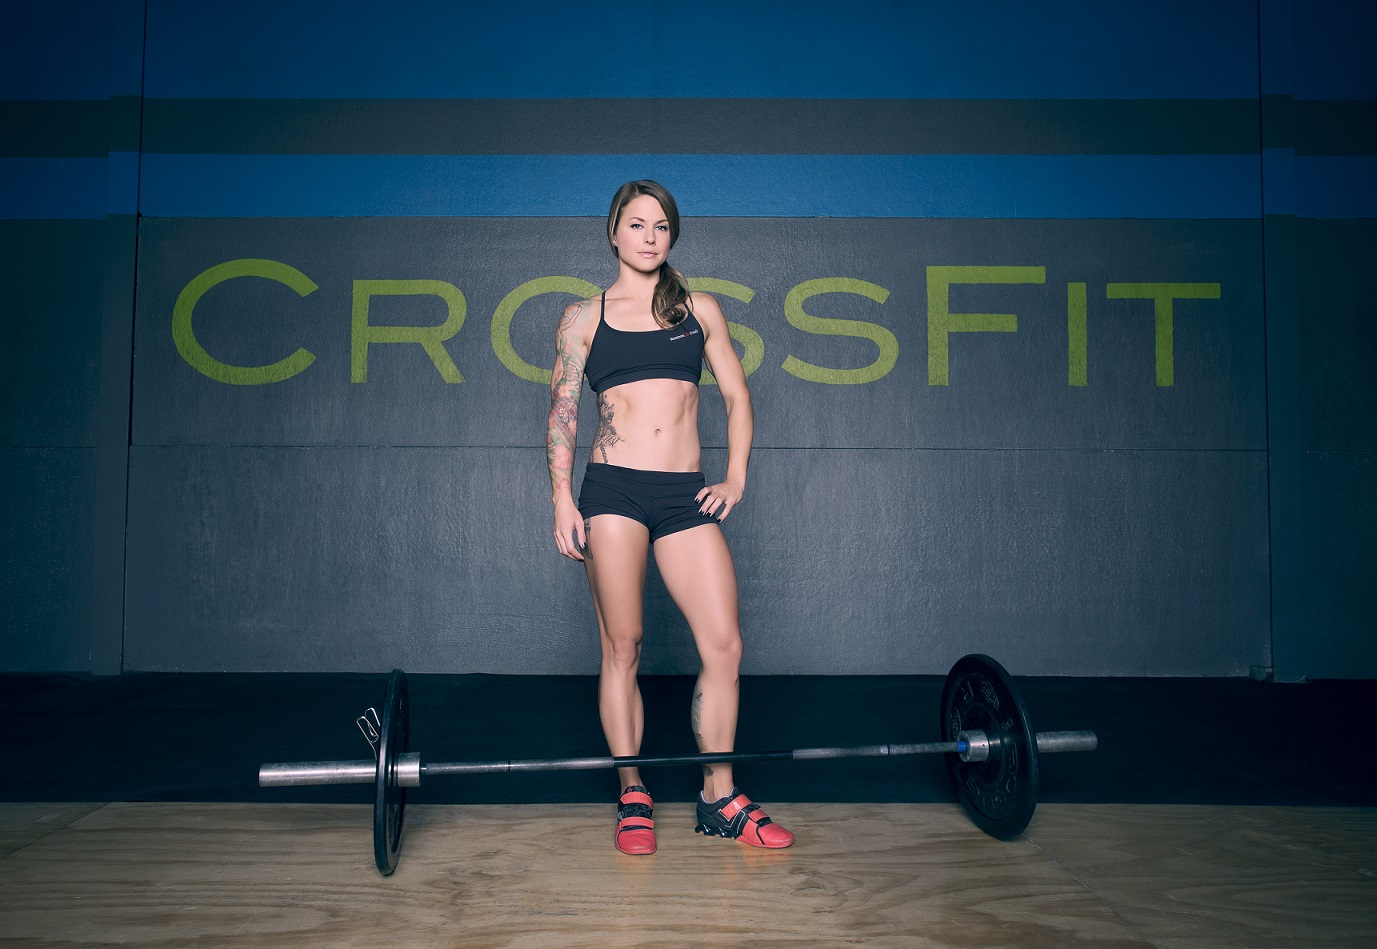 Christmas Abbott Workout.Crossfit Icon Christmas Abbott S Journey From Front Line To